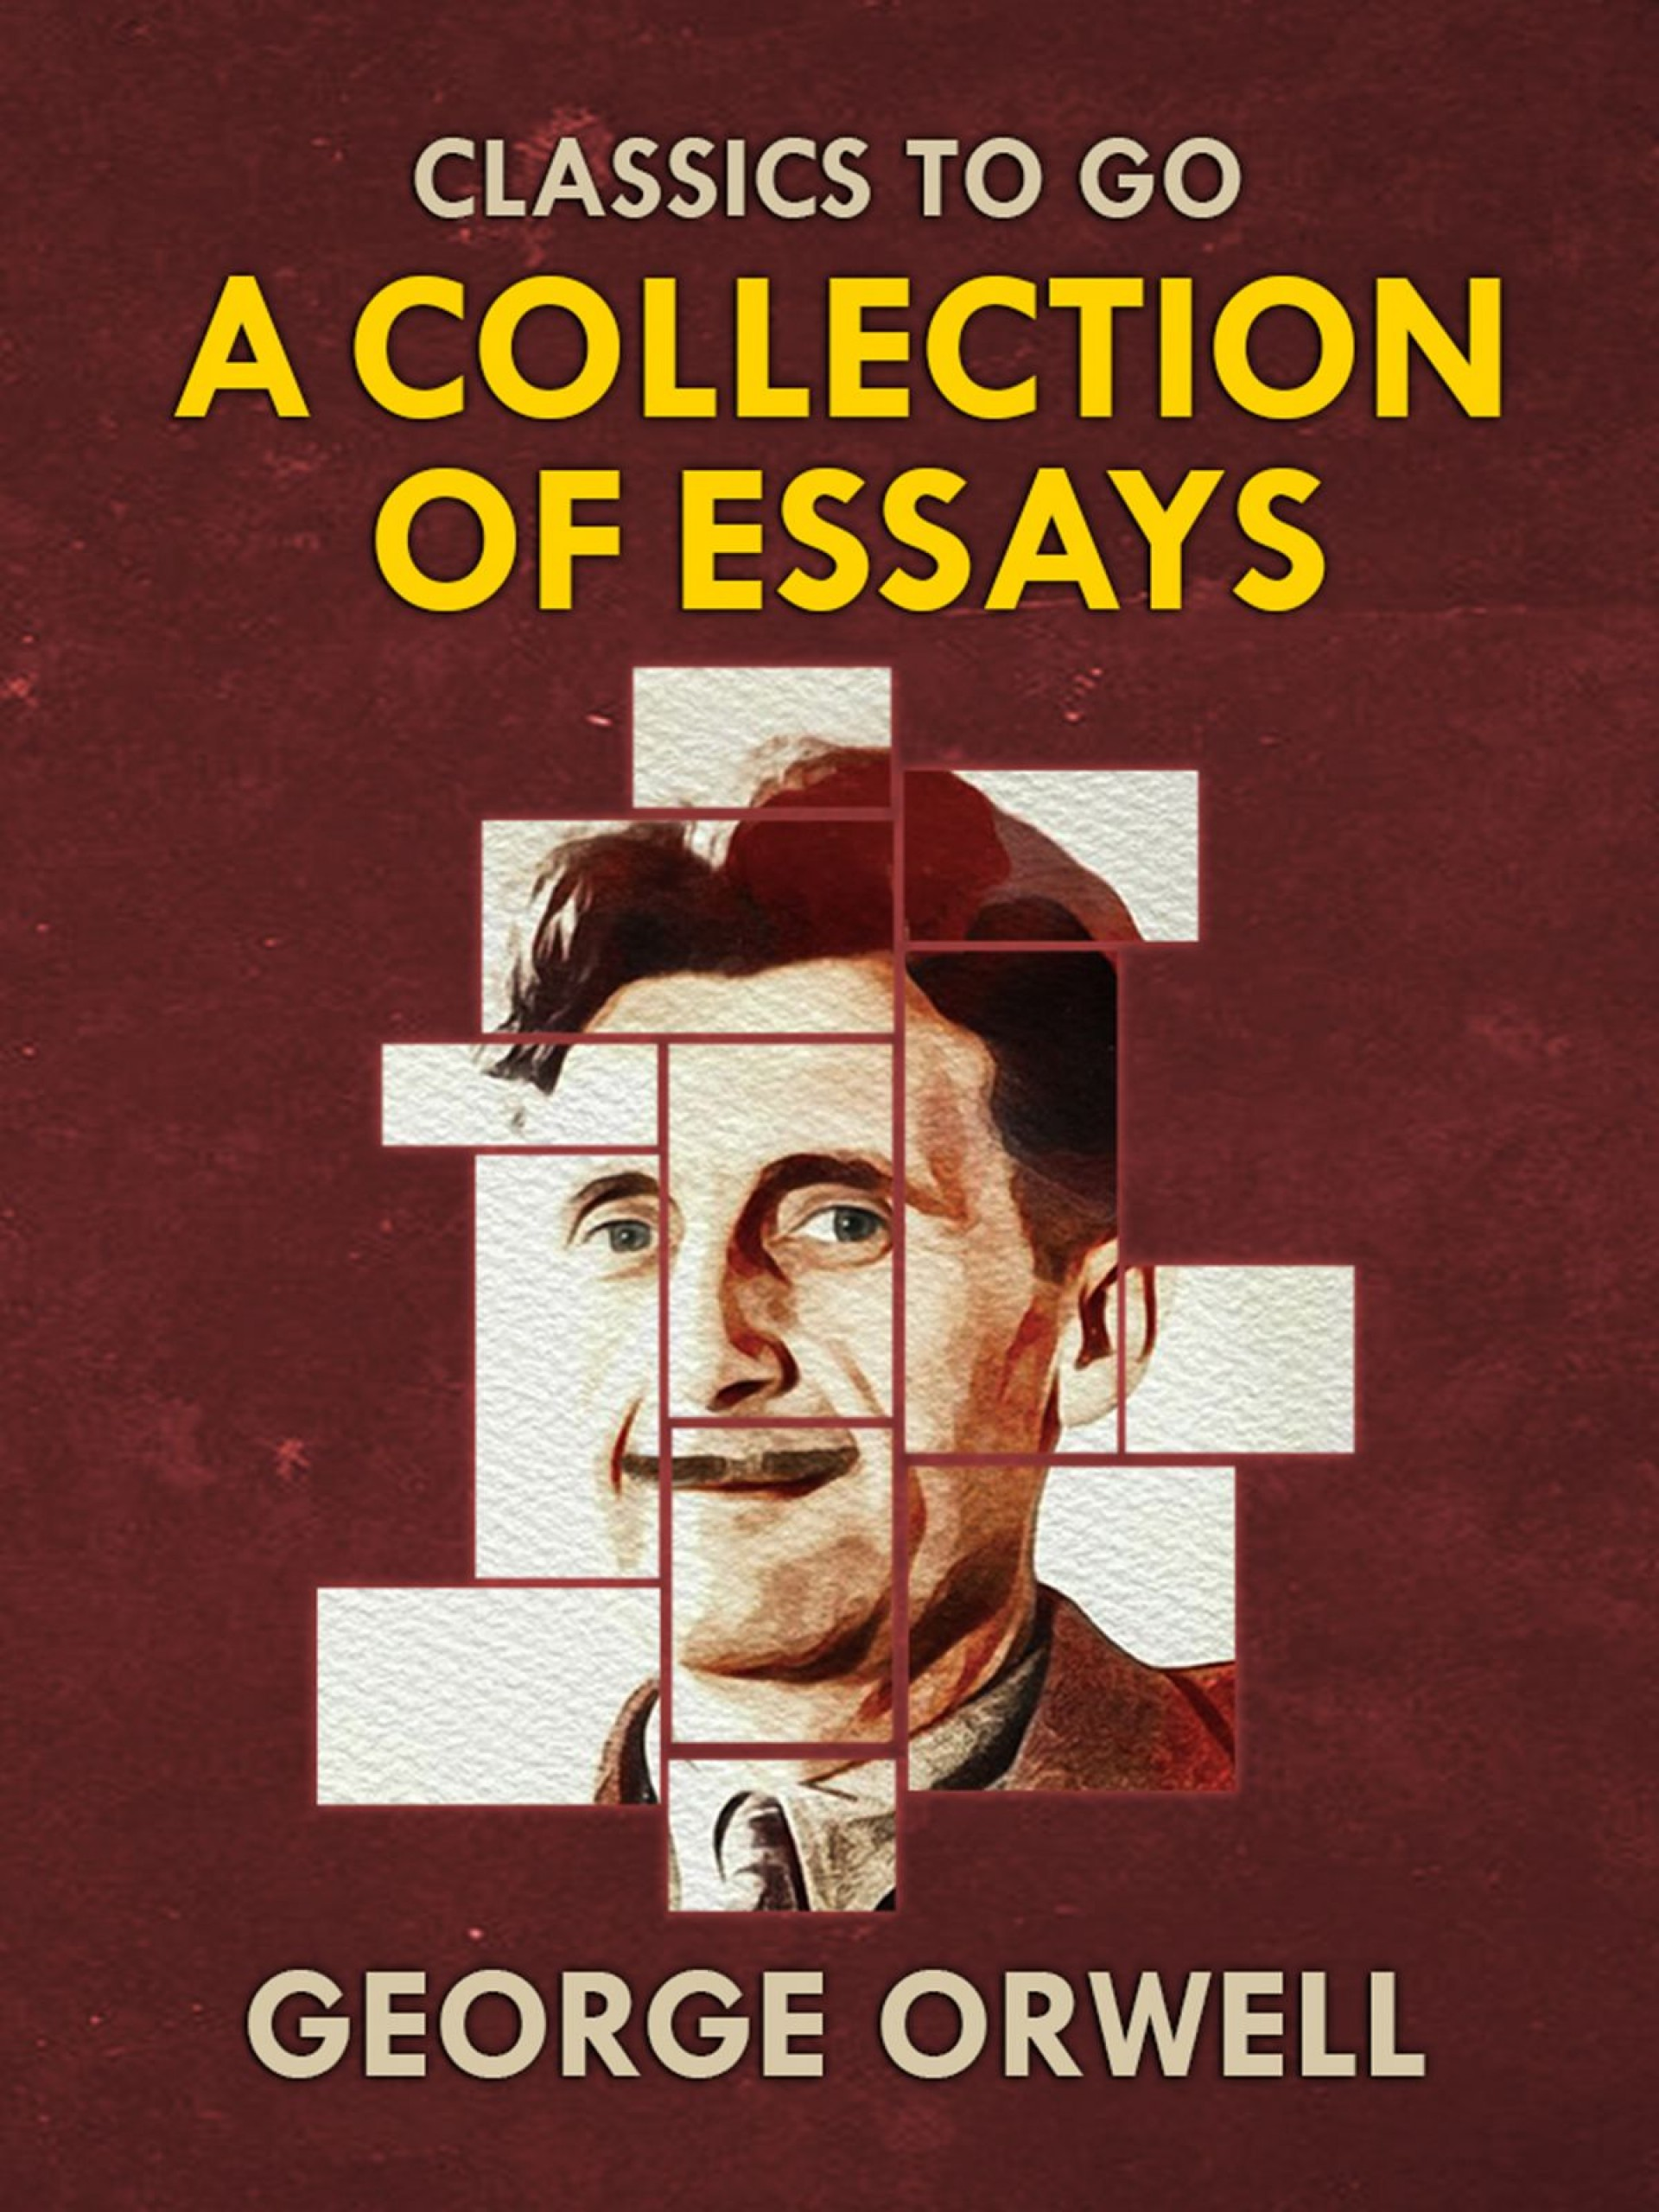 006 Essay Example Collections Of George Orwell Singular Essays Pdf Themes 1920